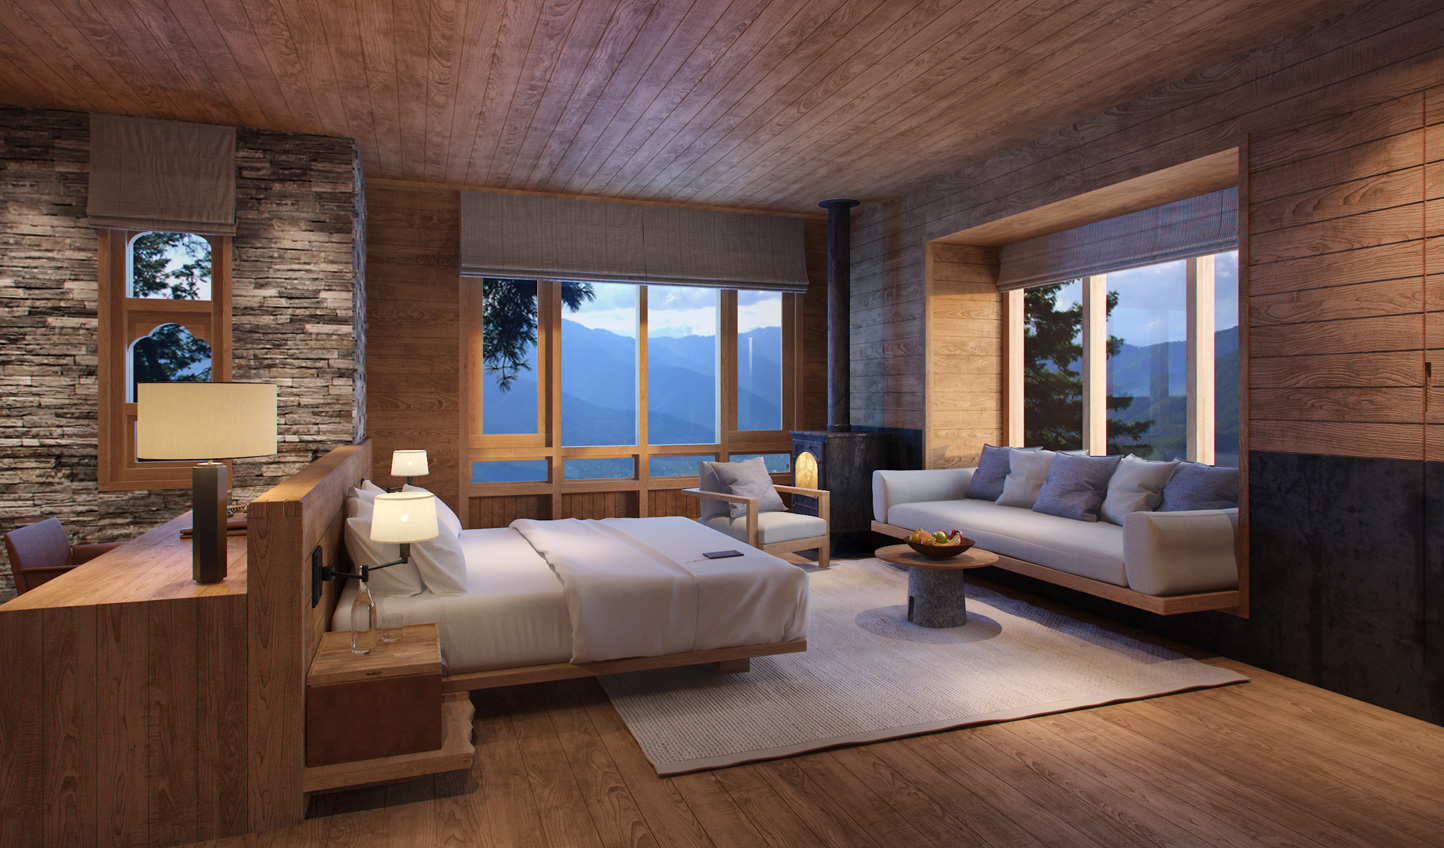 Luxurious designed inspired by Bhutan's heritage at Six Senses Paro